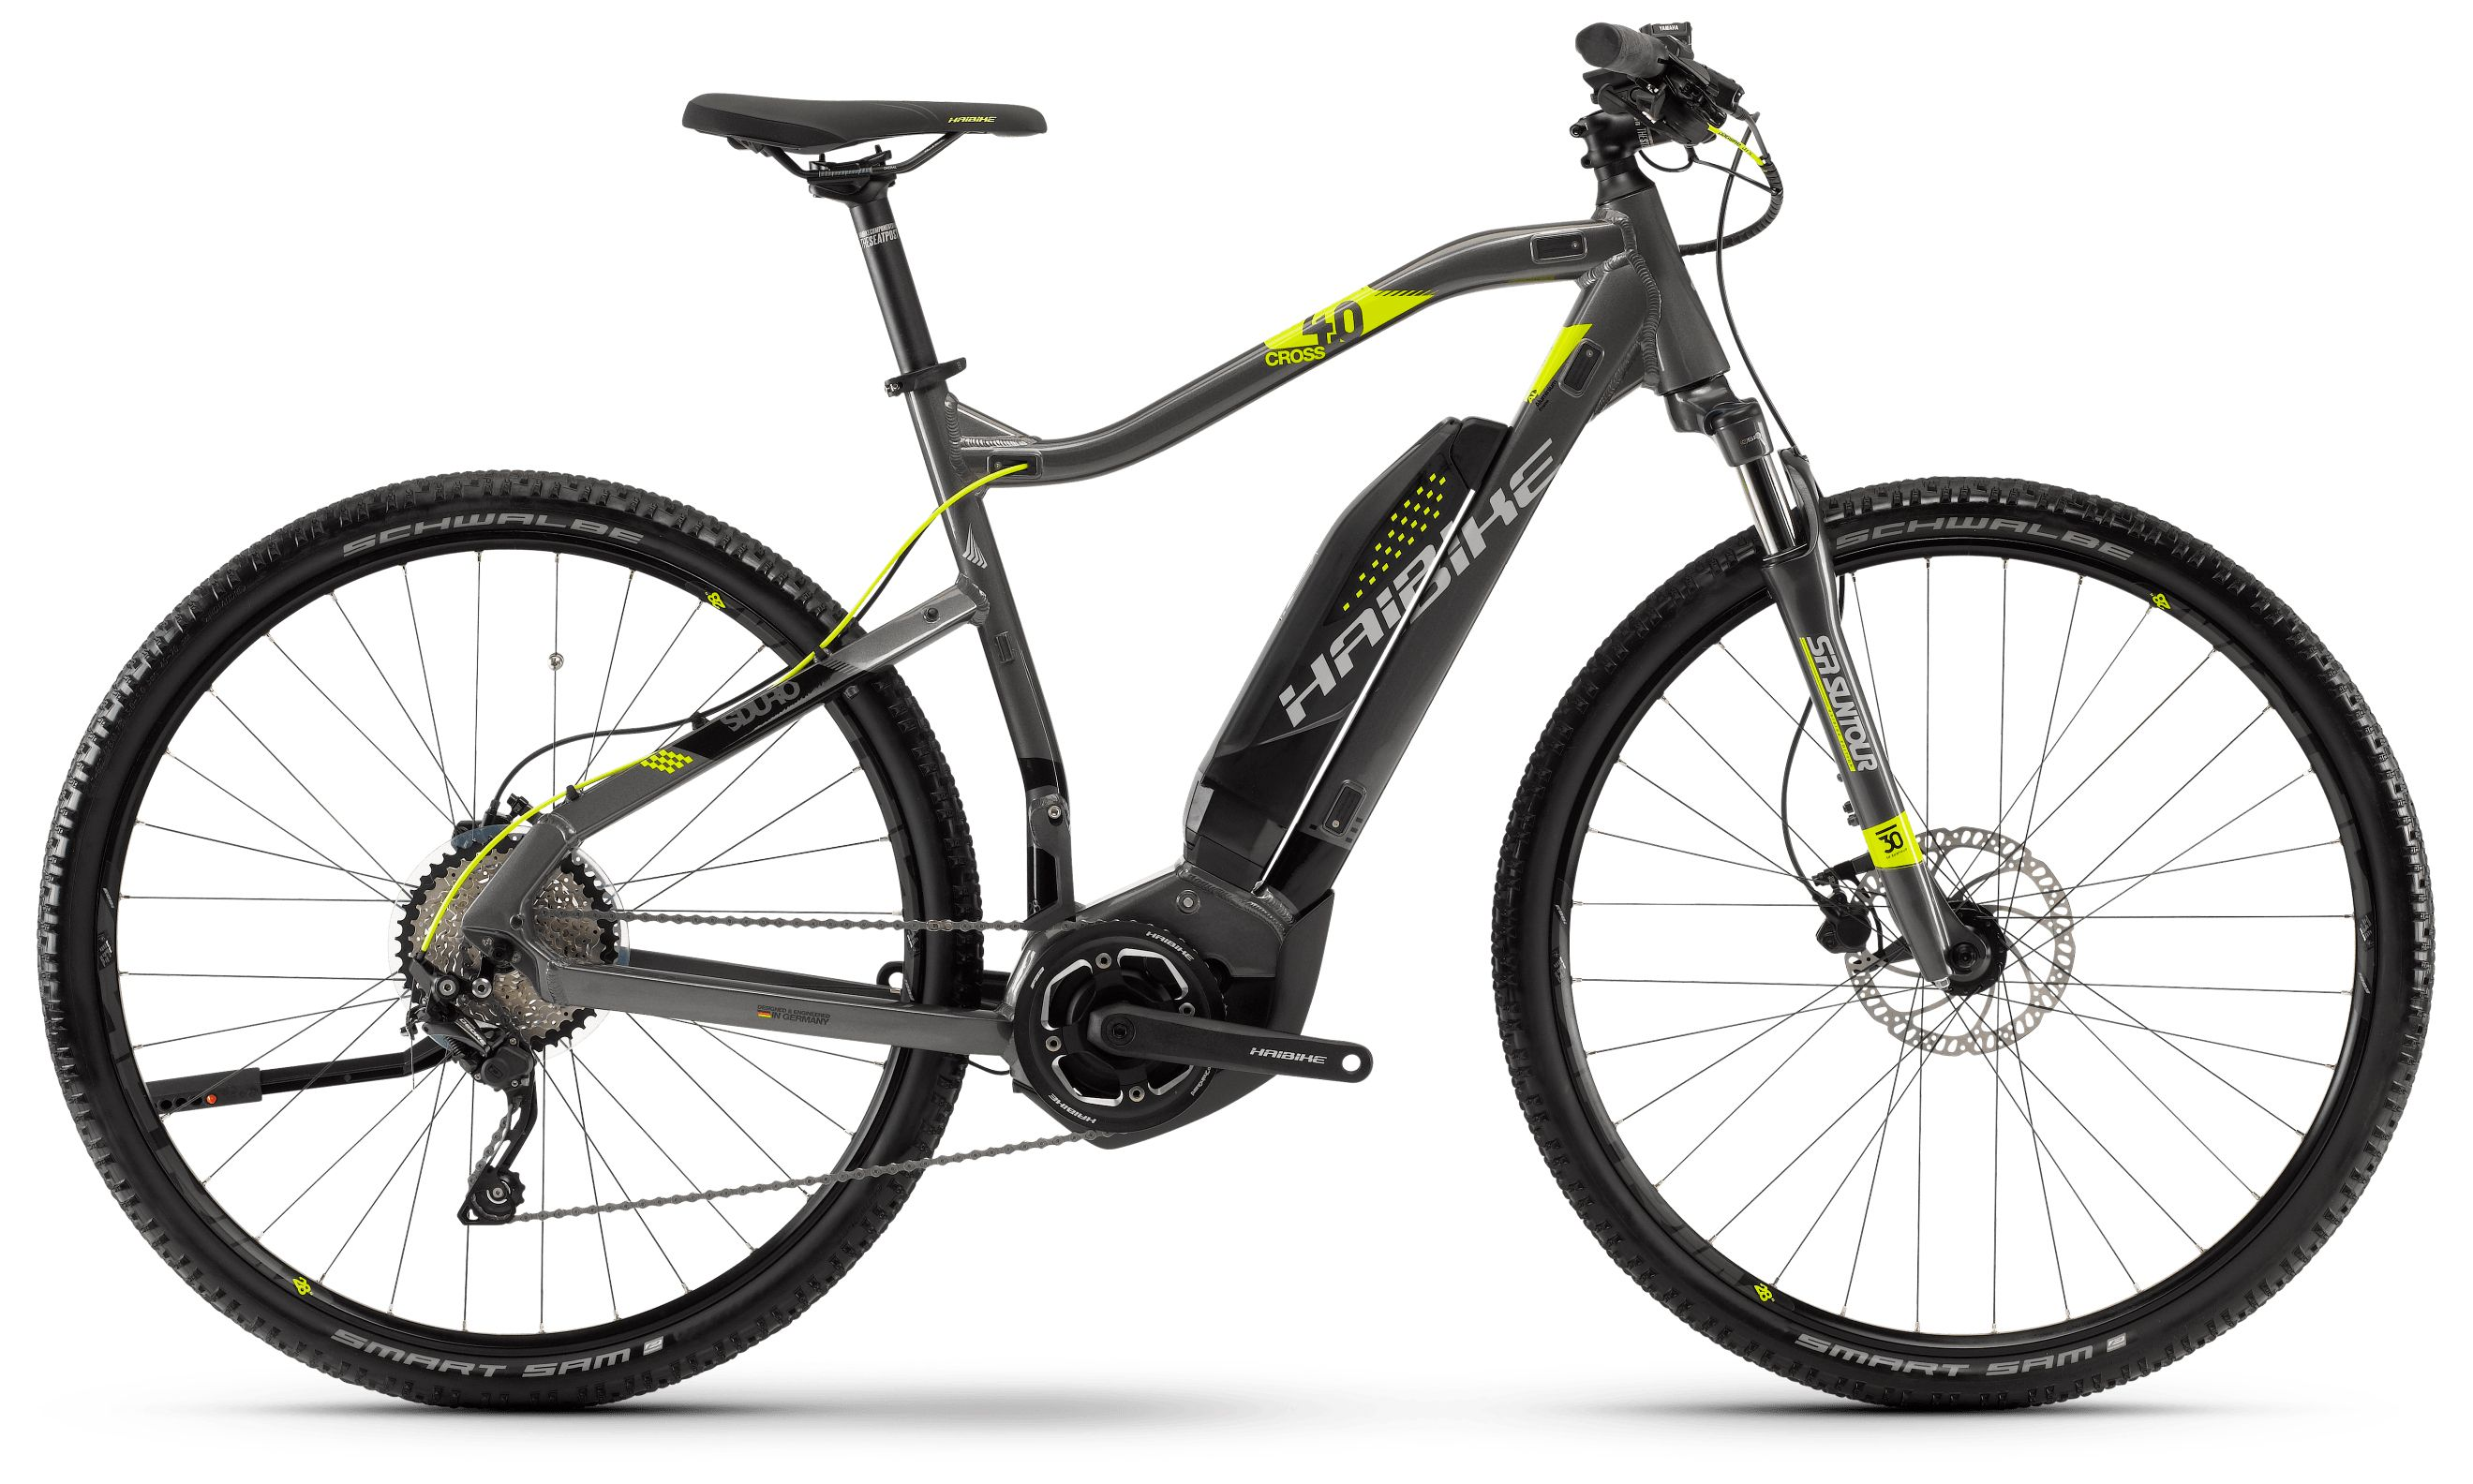 Велосипед Haibike Sduro Cross 4.0 men 400Wh 10s Deore 2018,  Городские  - артикул:288645